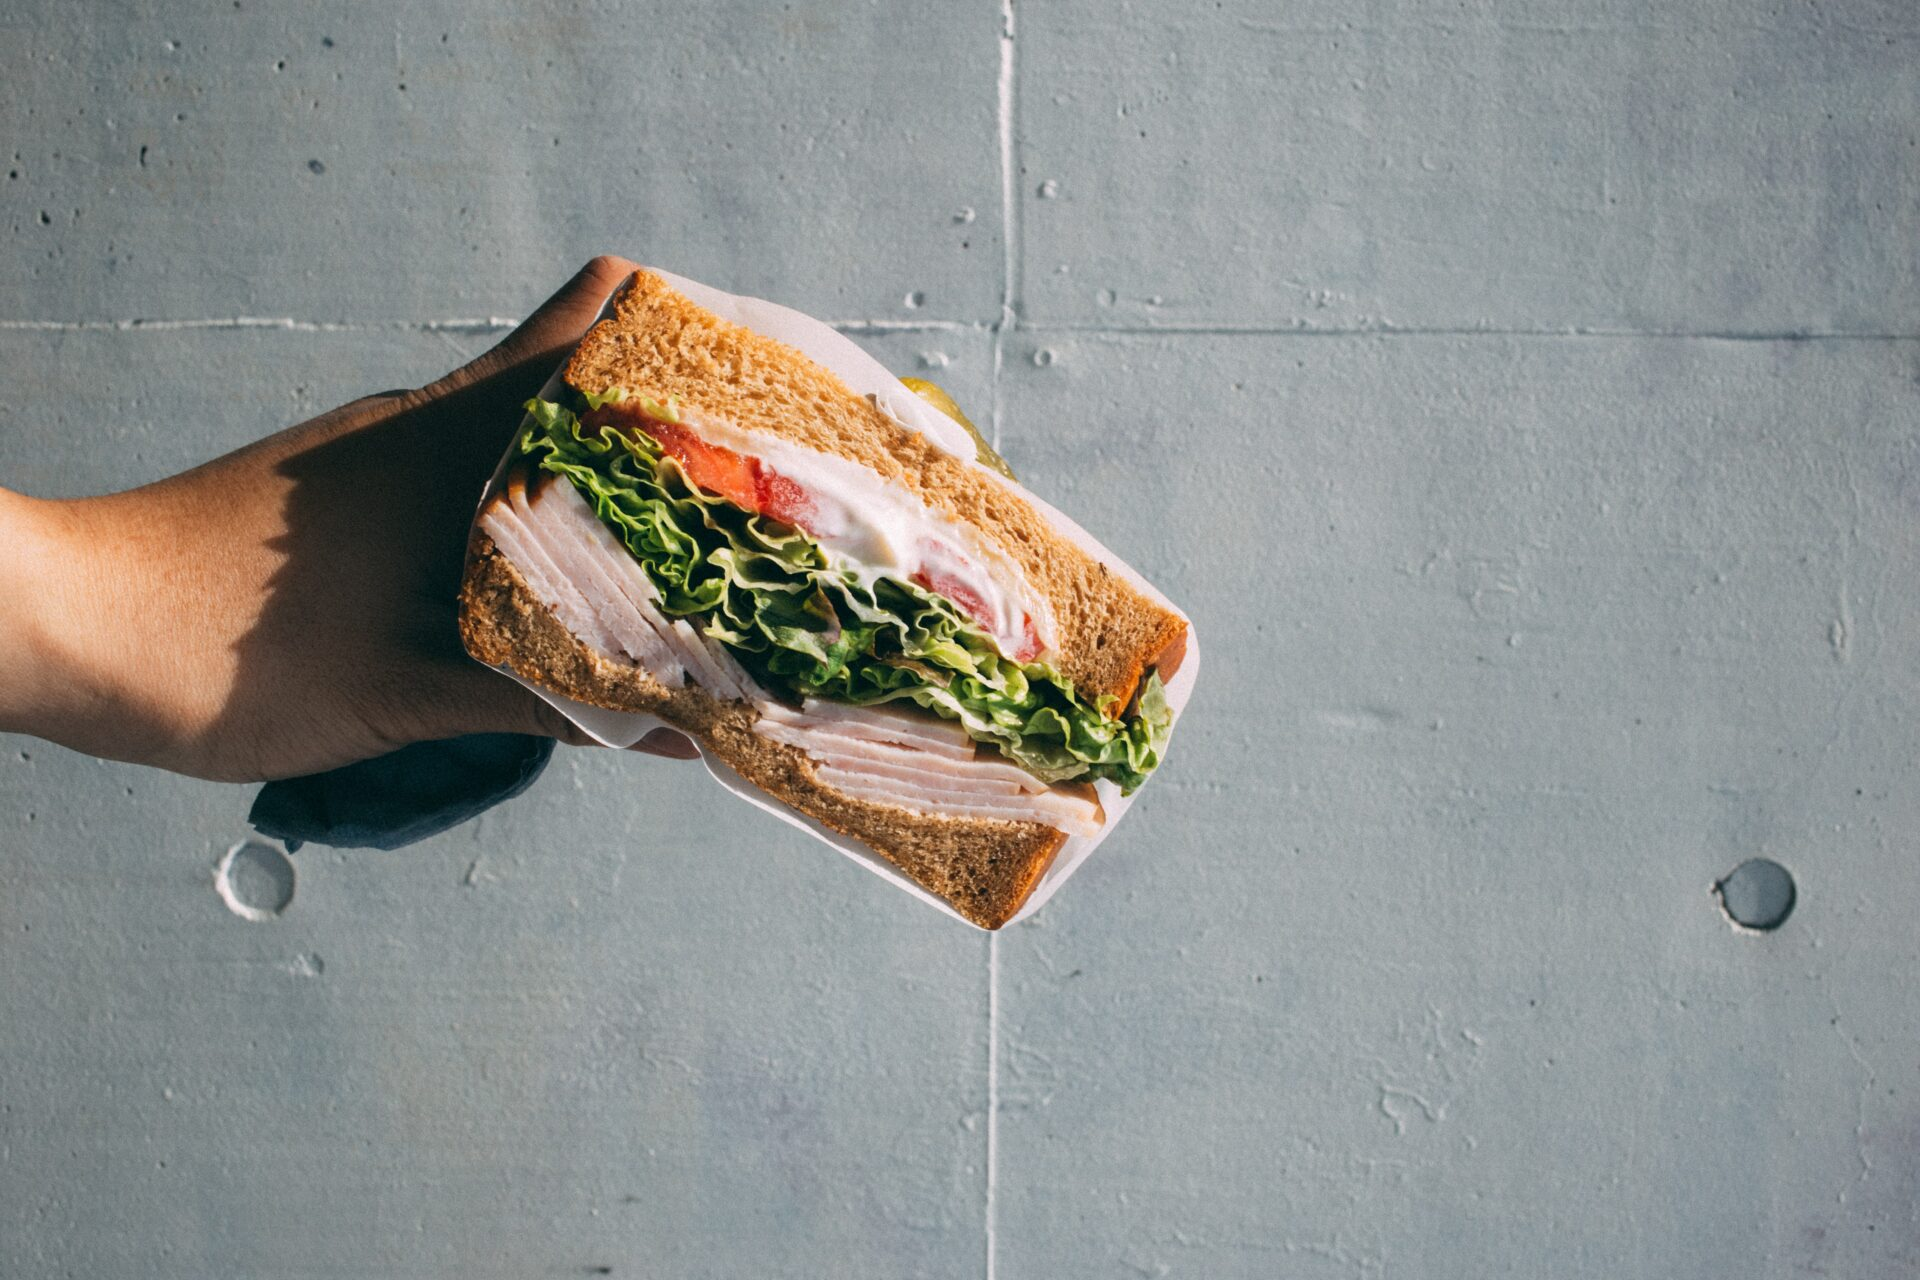 Out of the sandwich position with touchpoint management